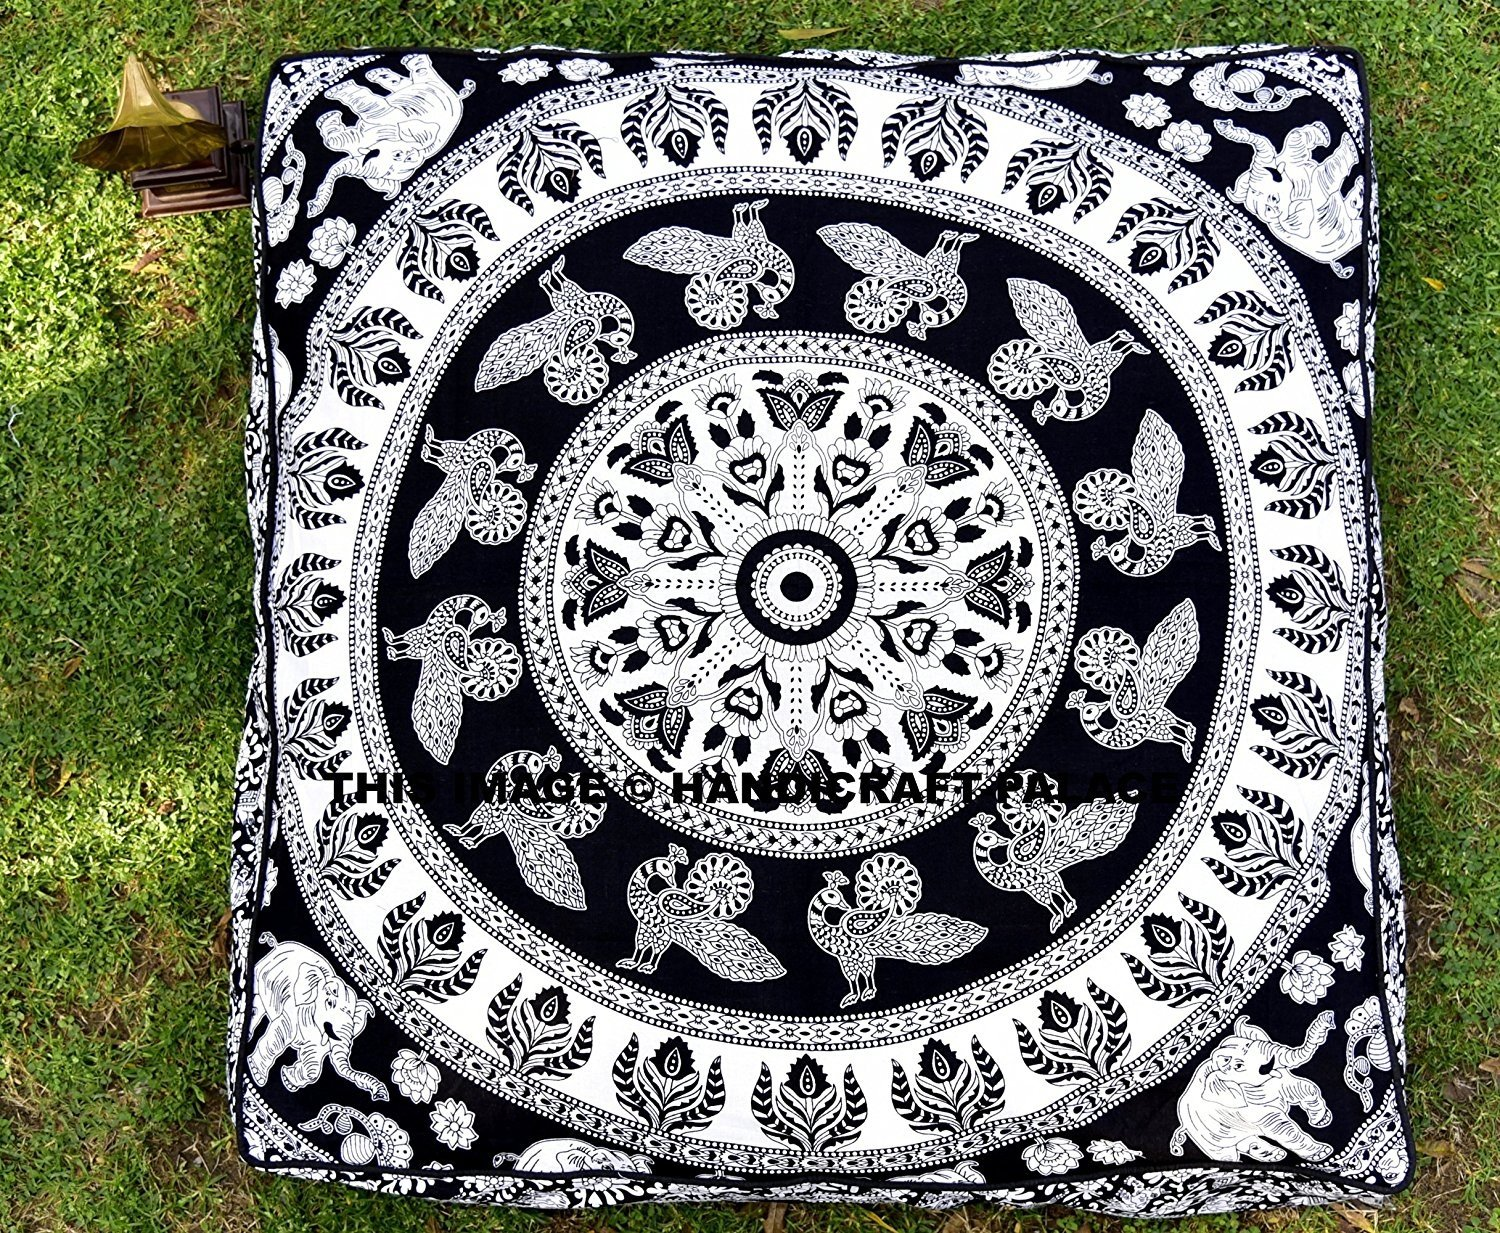 Black & White Elephant Mandala Floor Pillow Indian Tapestry Meditation Cushion Cover Square Ottoman Pouf Cover Outdoor Dog / Cat / Pet Bed 35''